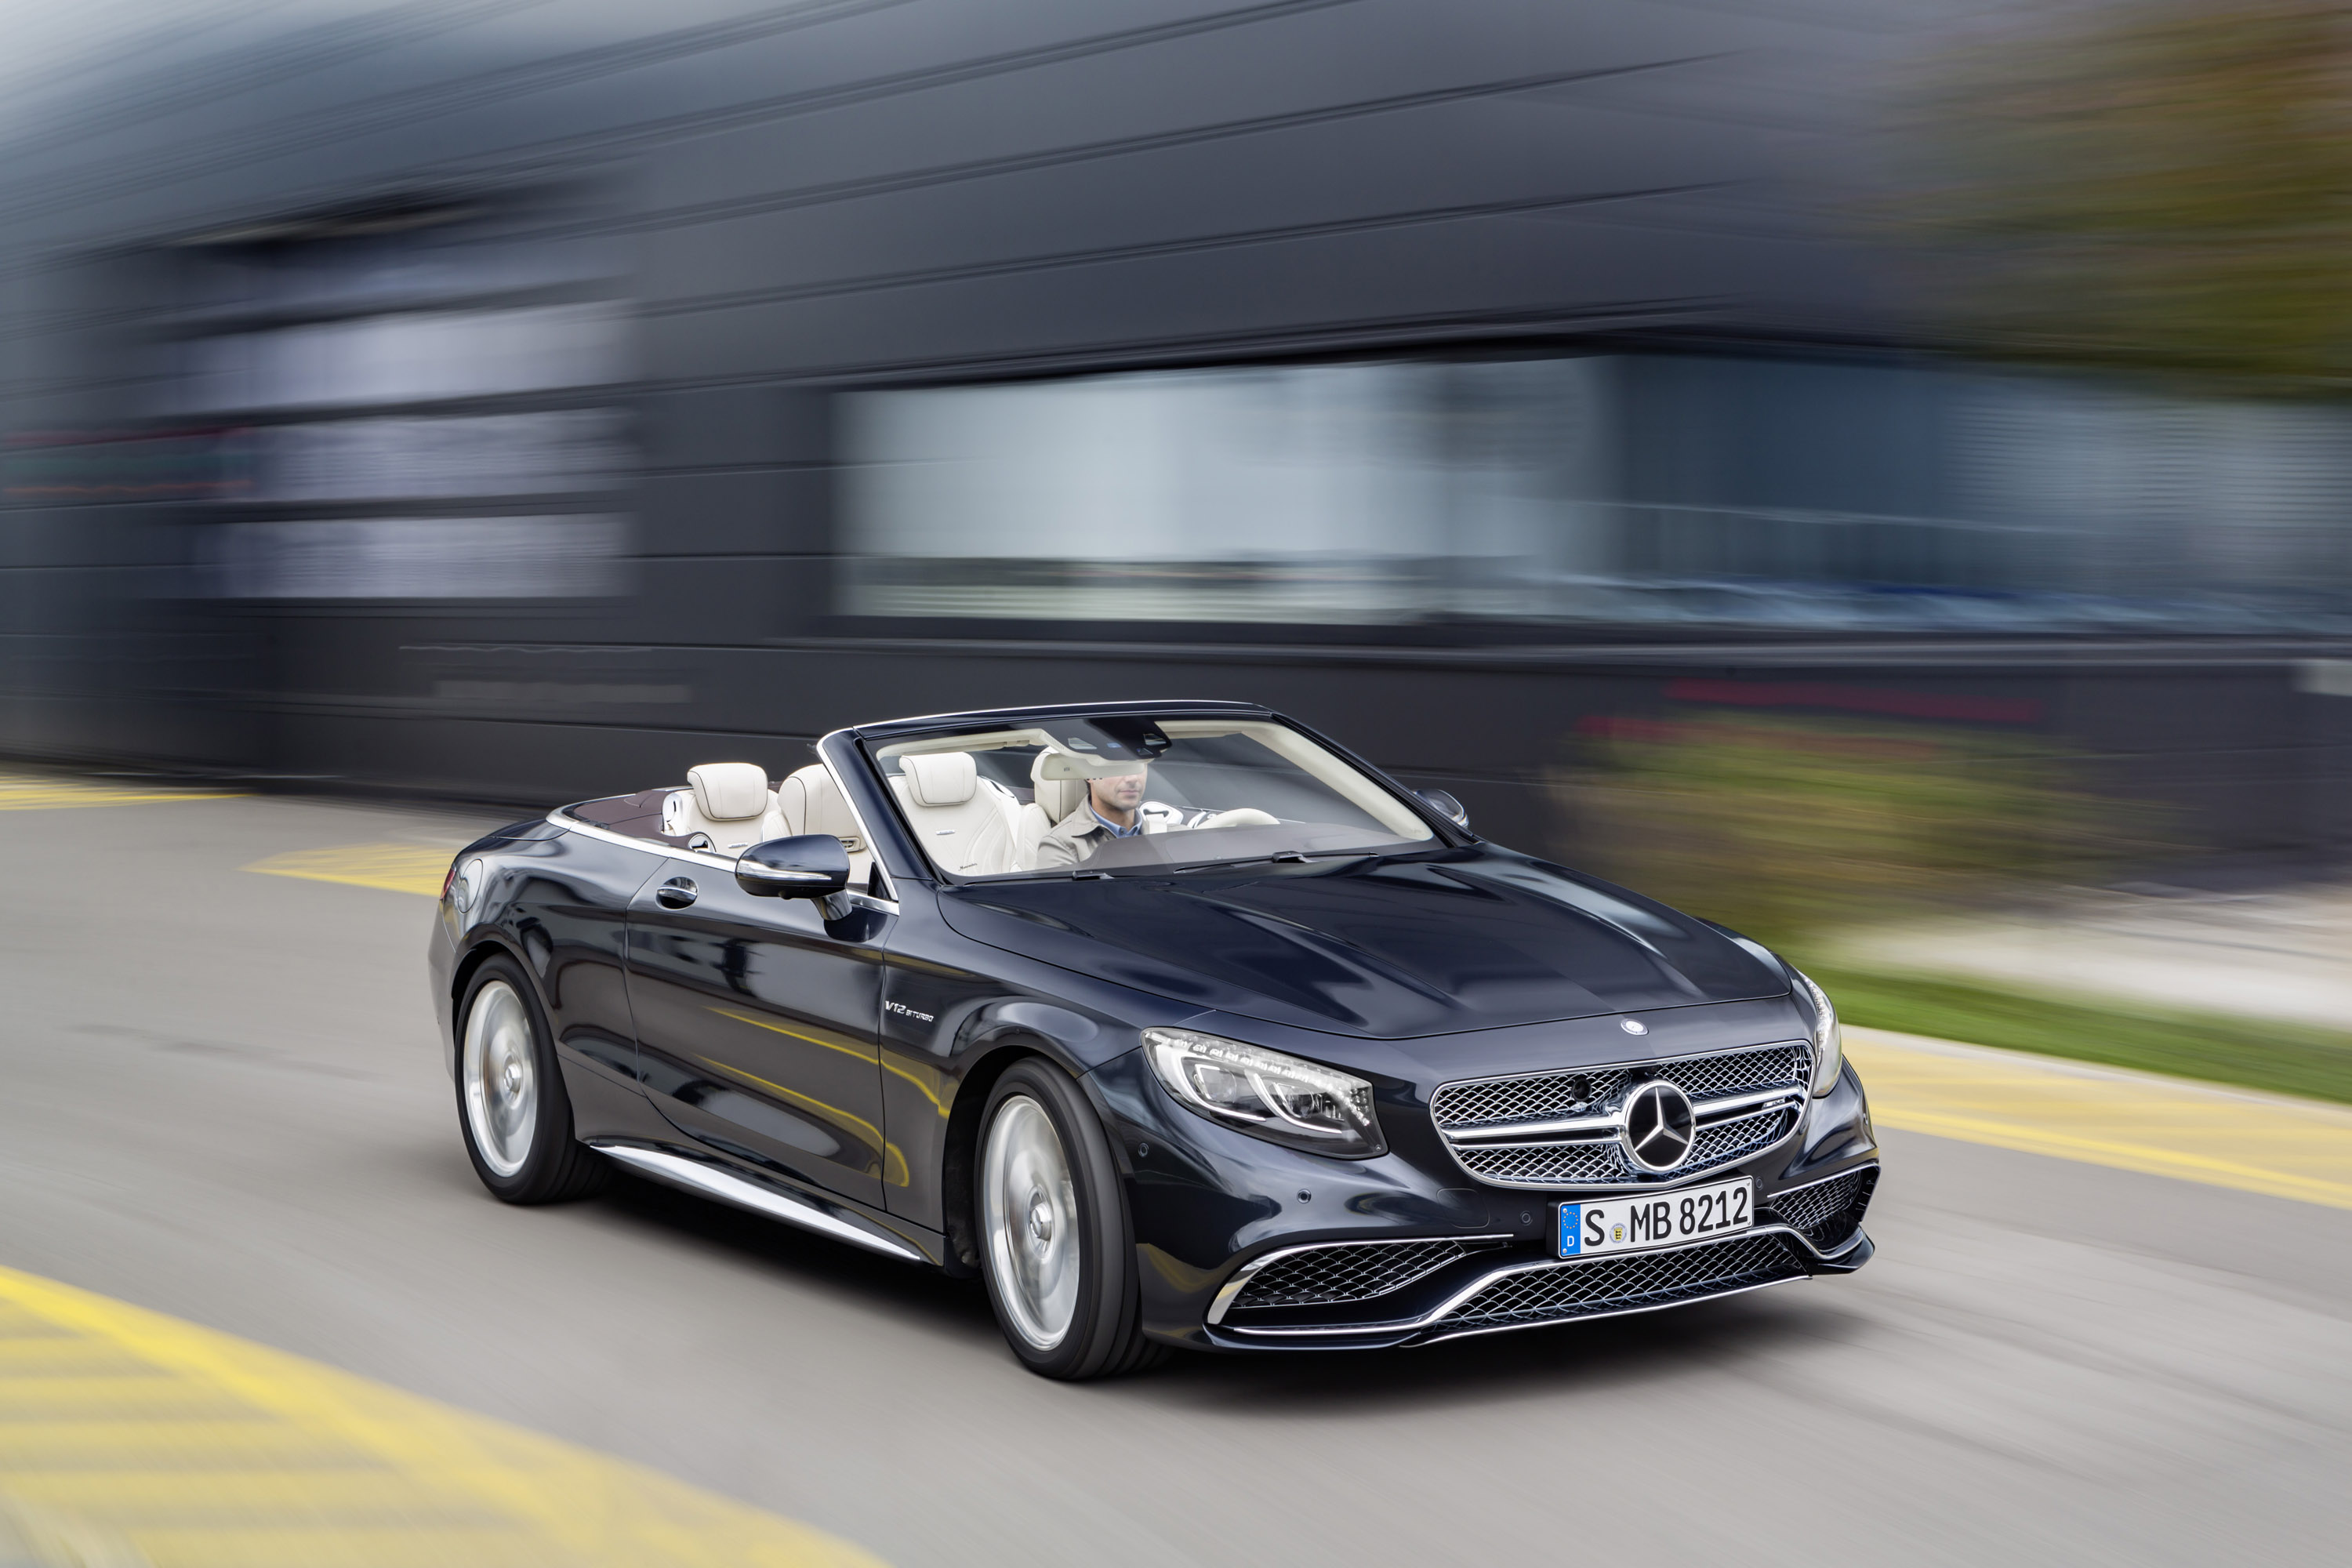 Amg unveils s65 cabriolet for 2015 mercedes benz s65